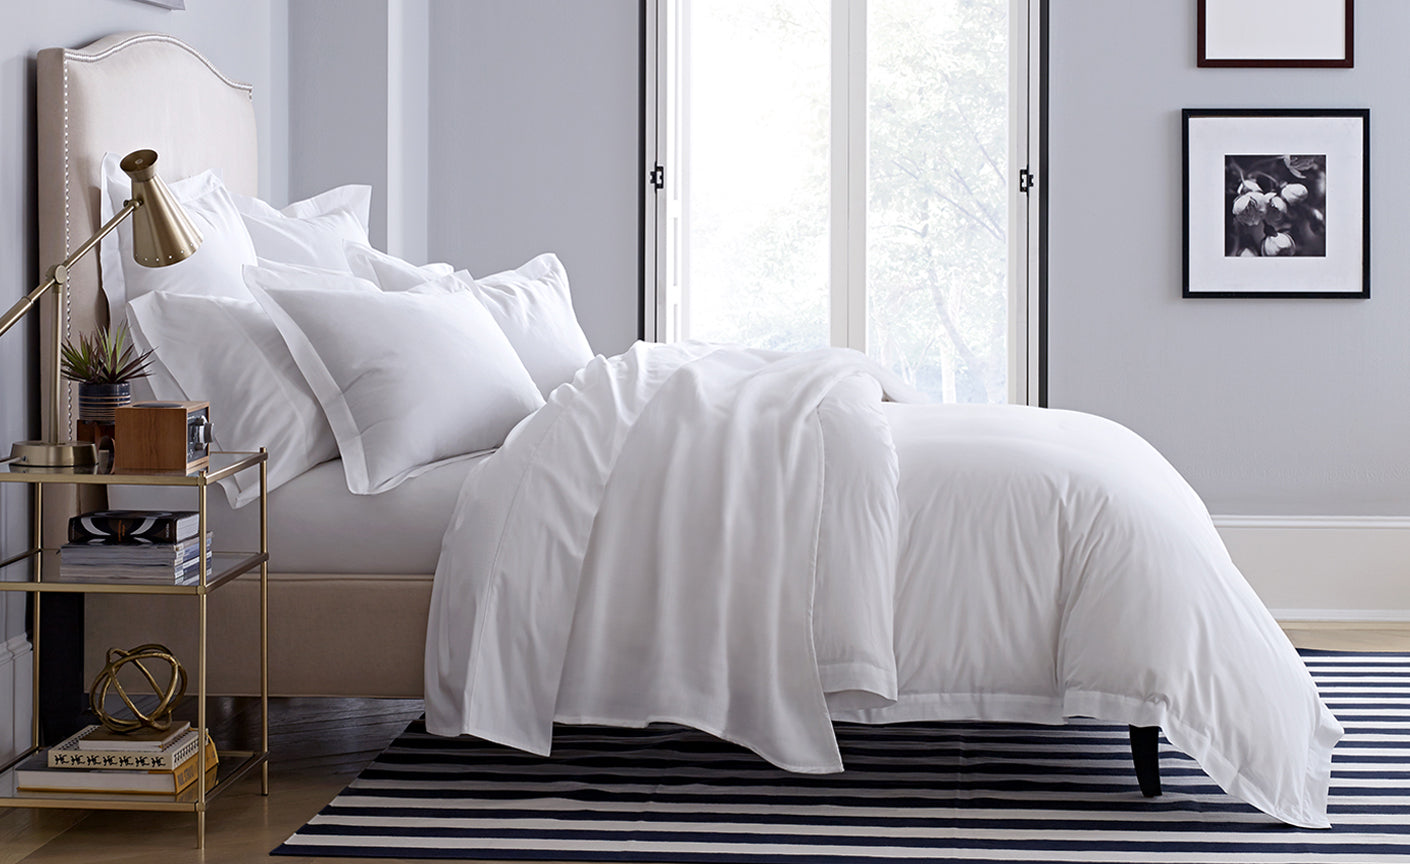 suites product down duvet ffi hotel xlrg comforter fairfield store d inn